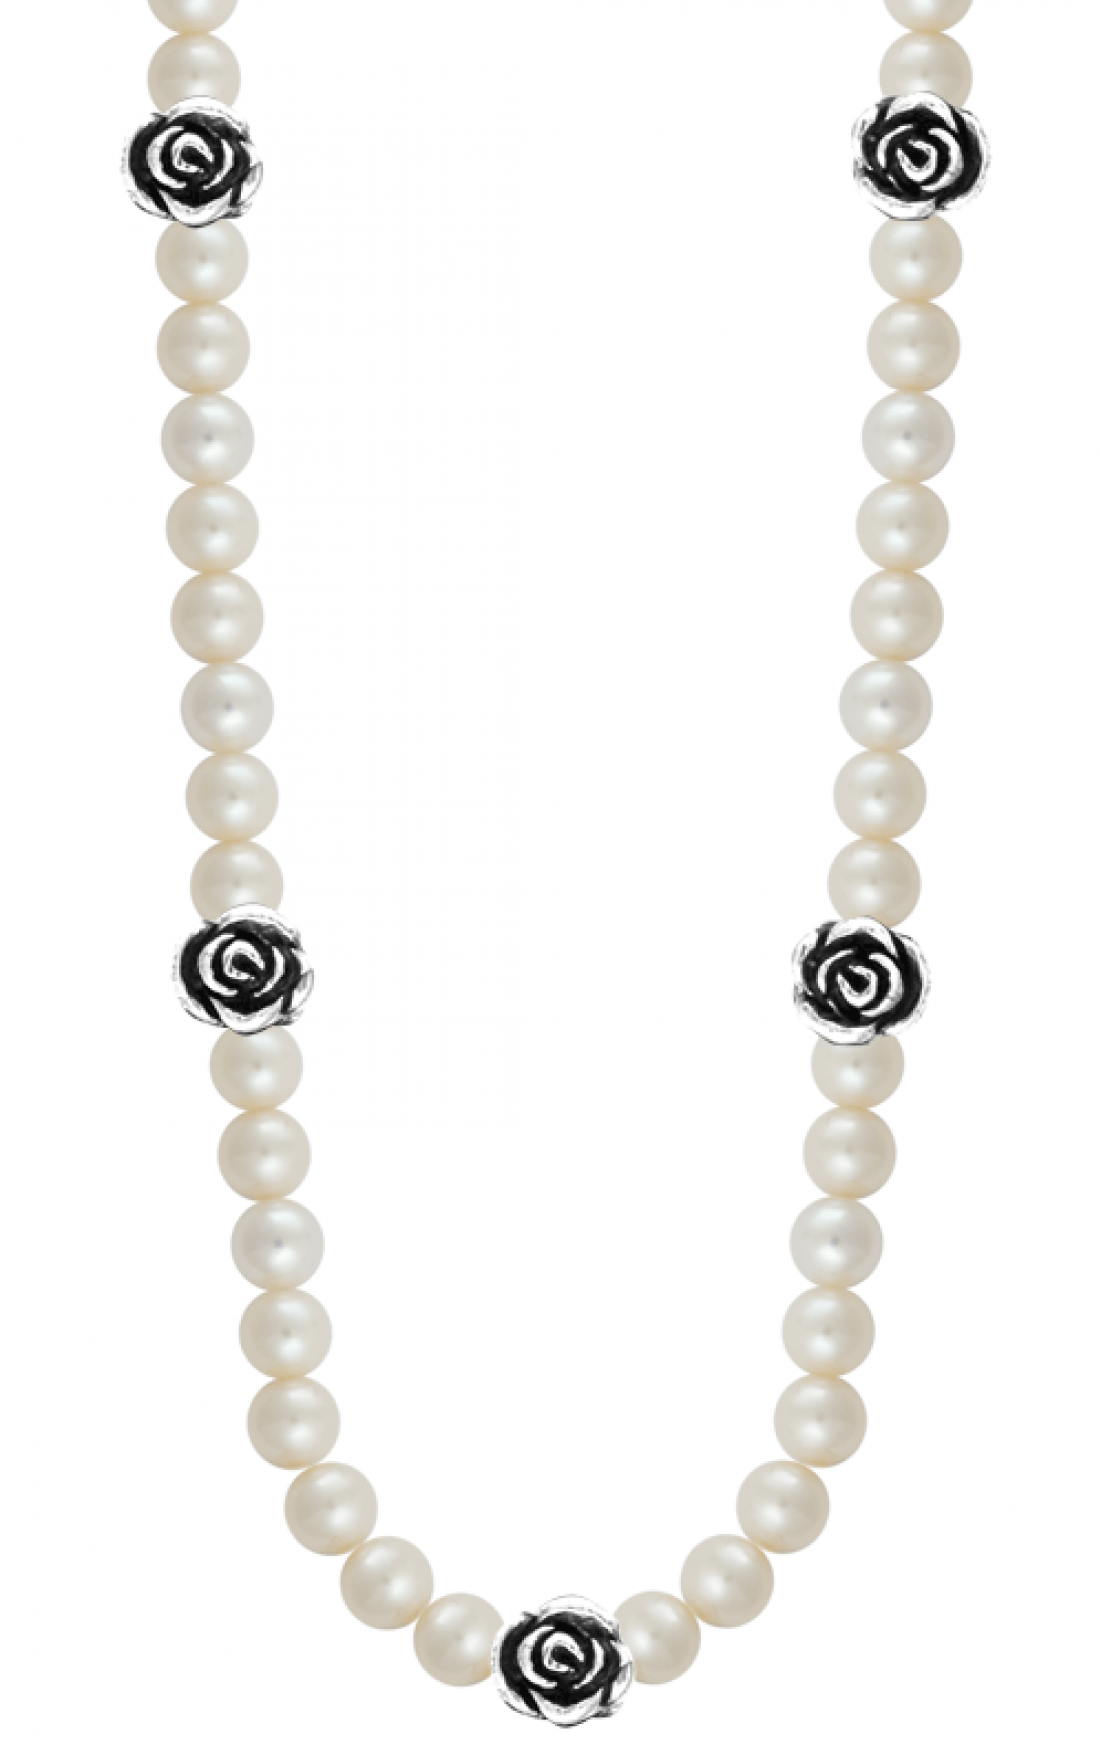 Queen Baby - Rose Pearl Necklace (Q52-5169W)